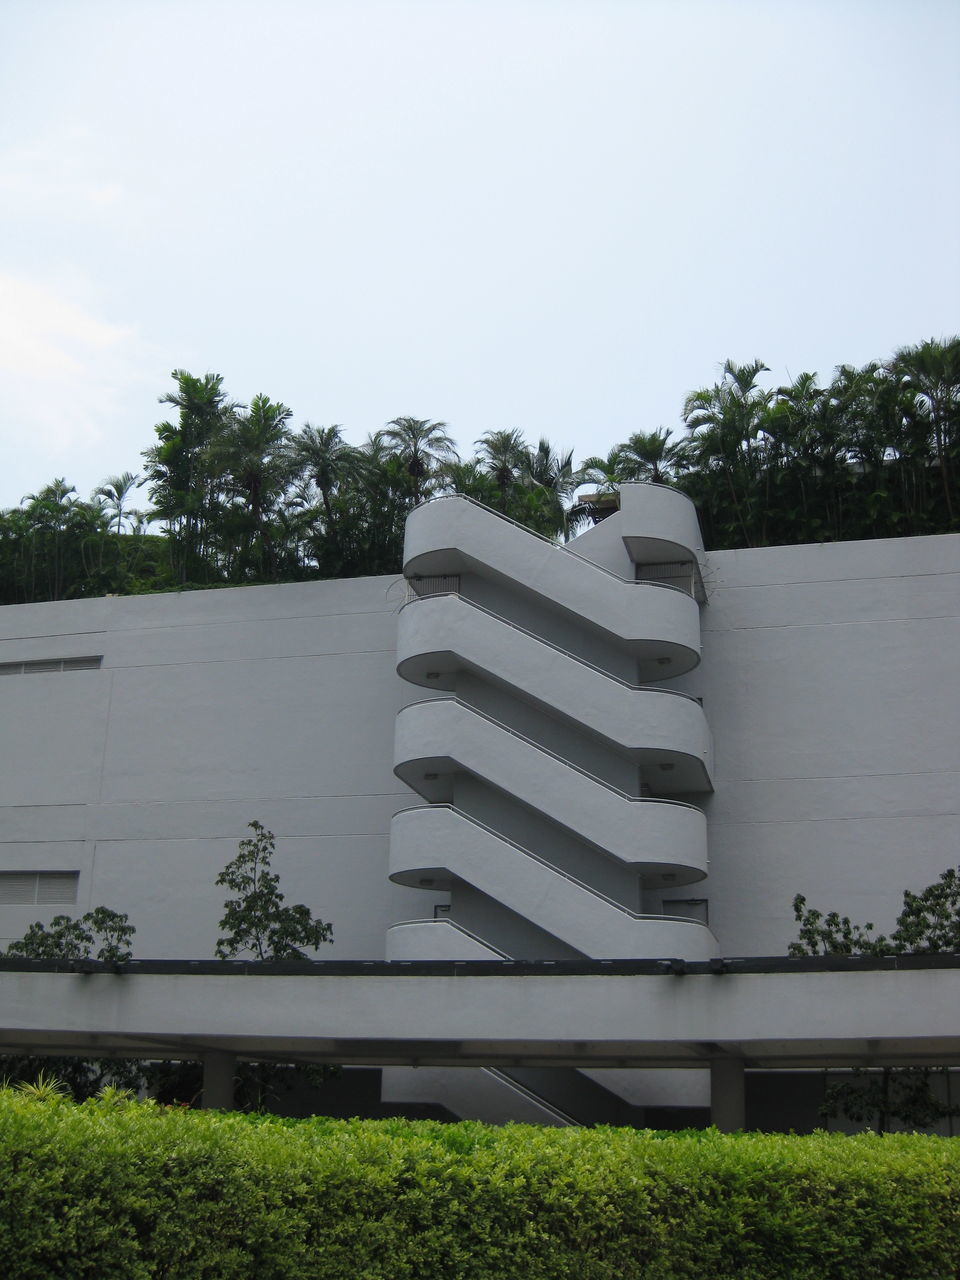 Low Angle View Of Staircase In Building Against Sky